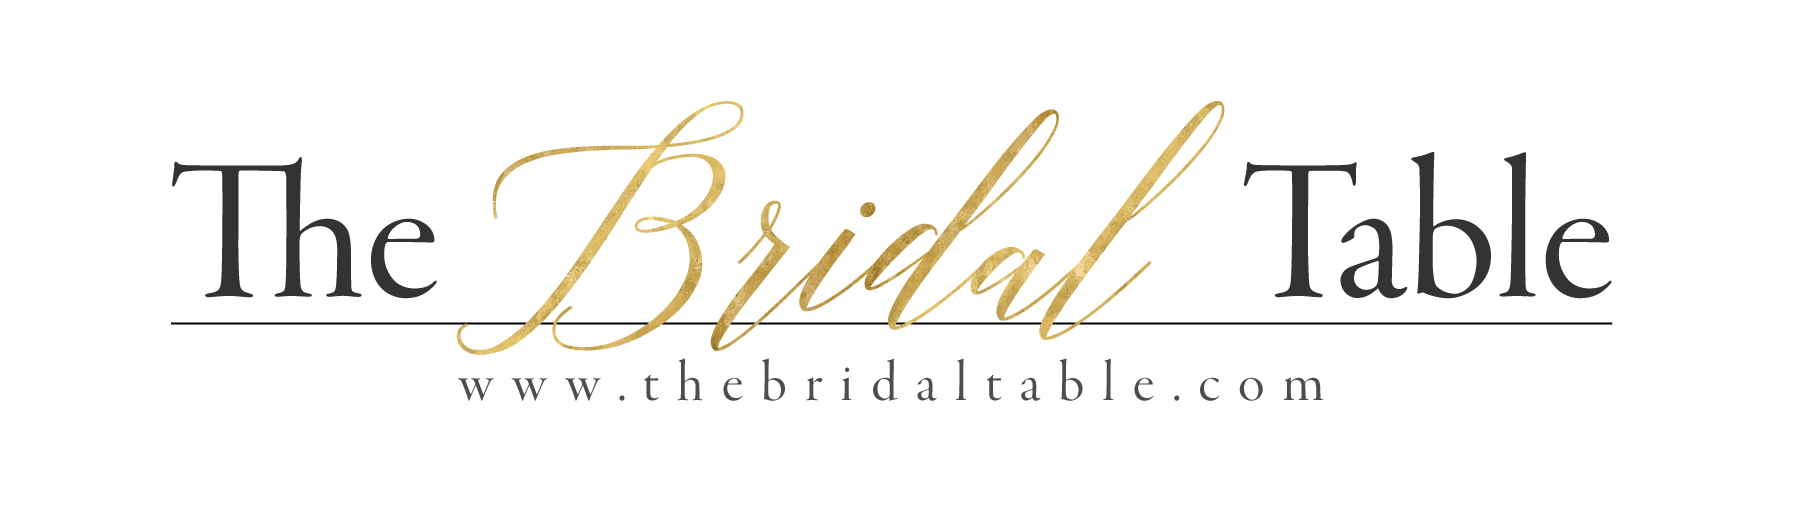 The-Bridal-Table-with-website.png